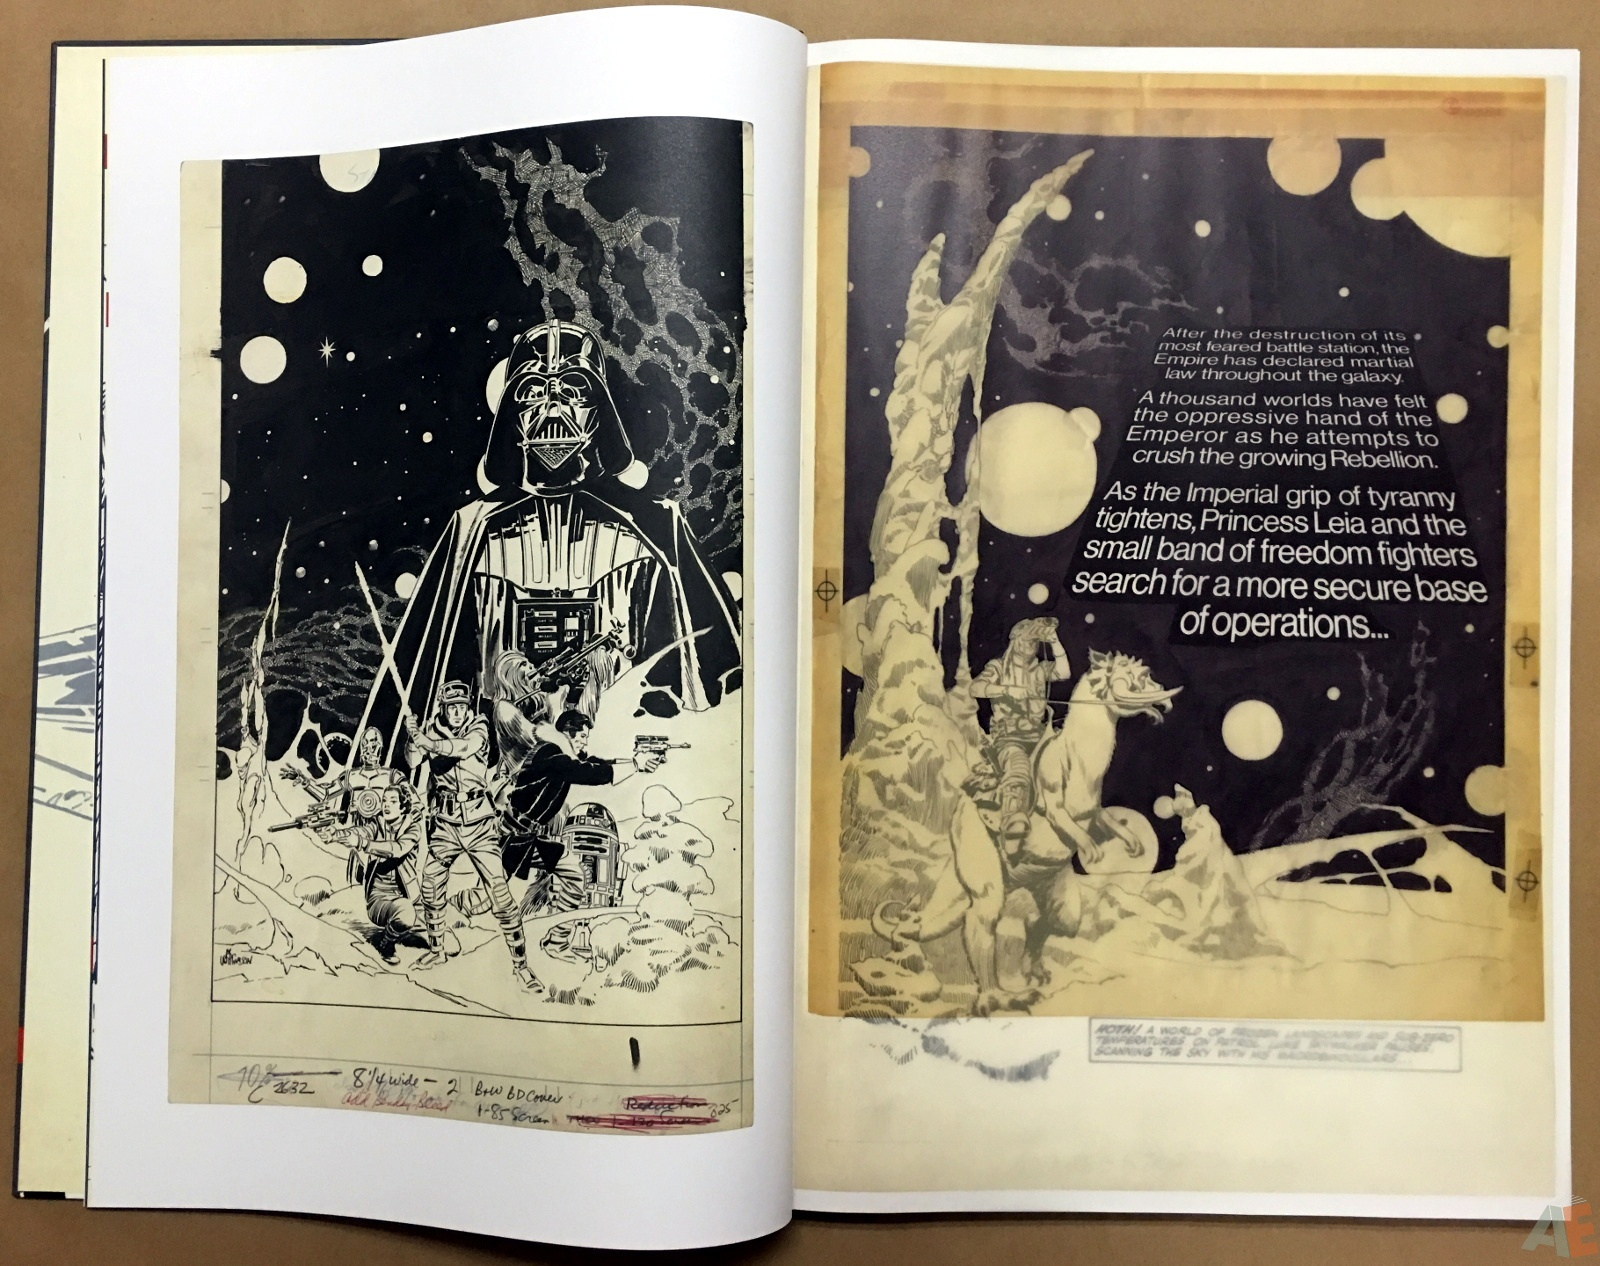 Al Williamson's Star Wars: The Empire Strikes Back Artist's Edition 10